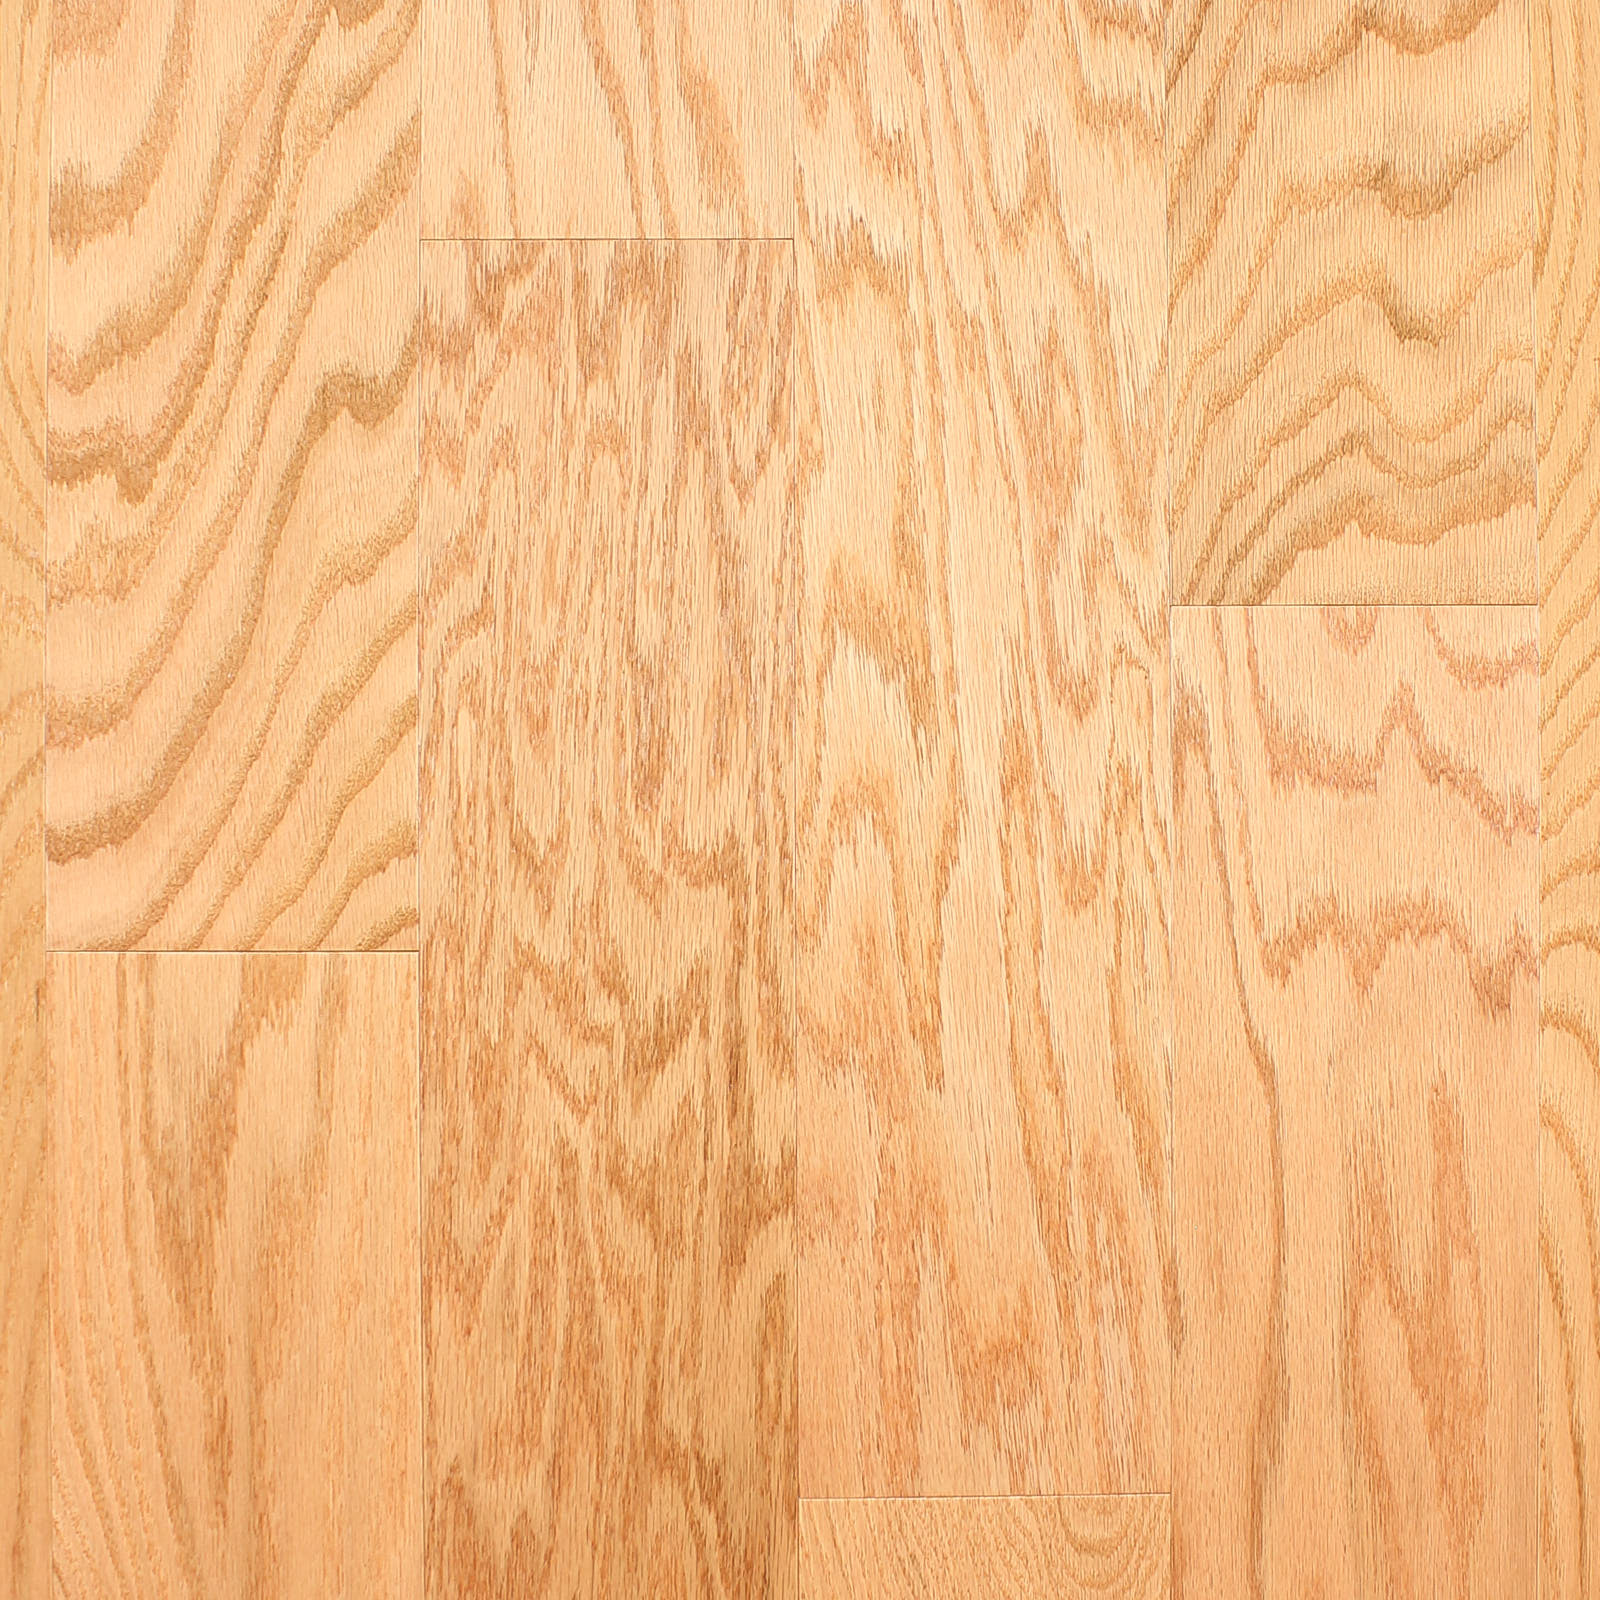 Natural Engineered Hardwood Flooring